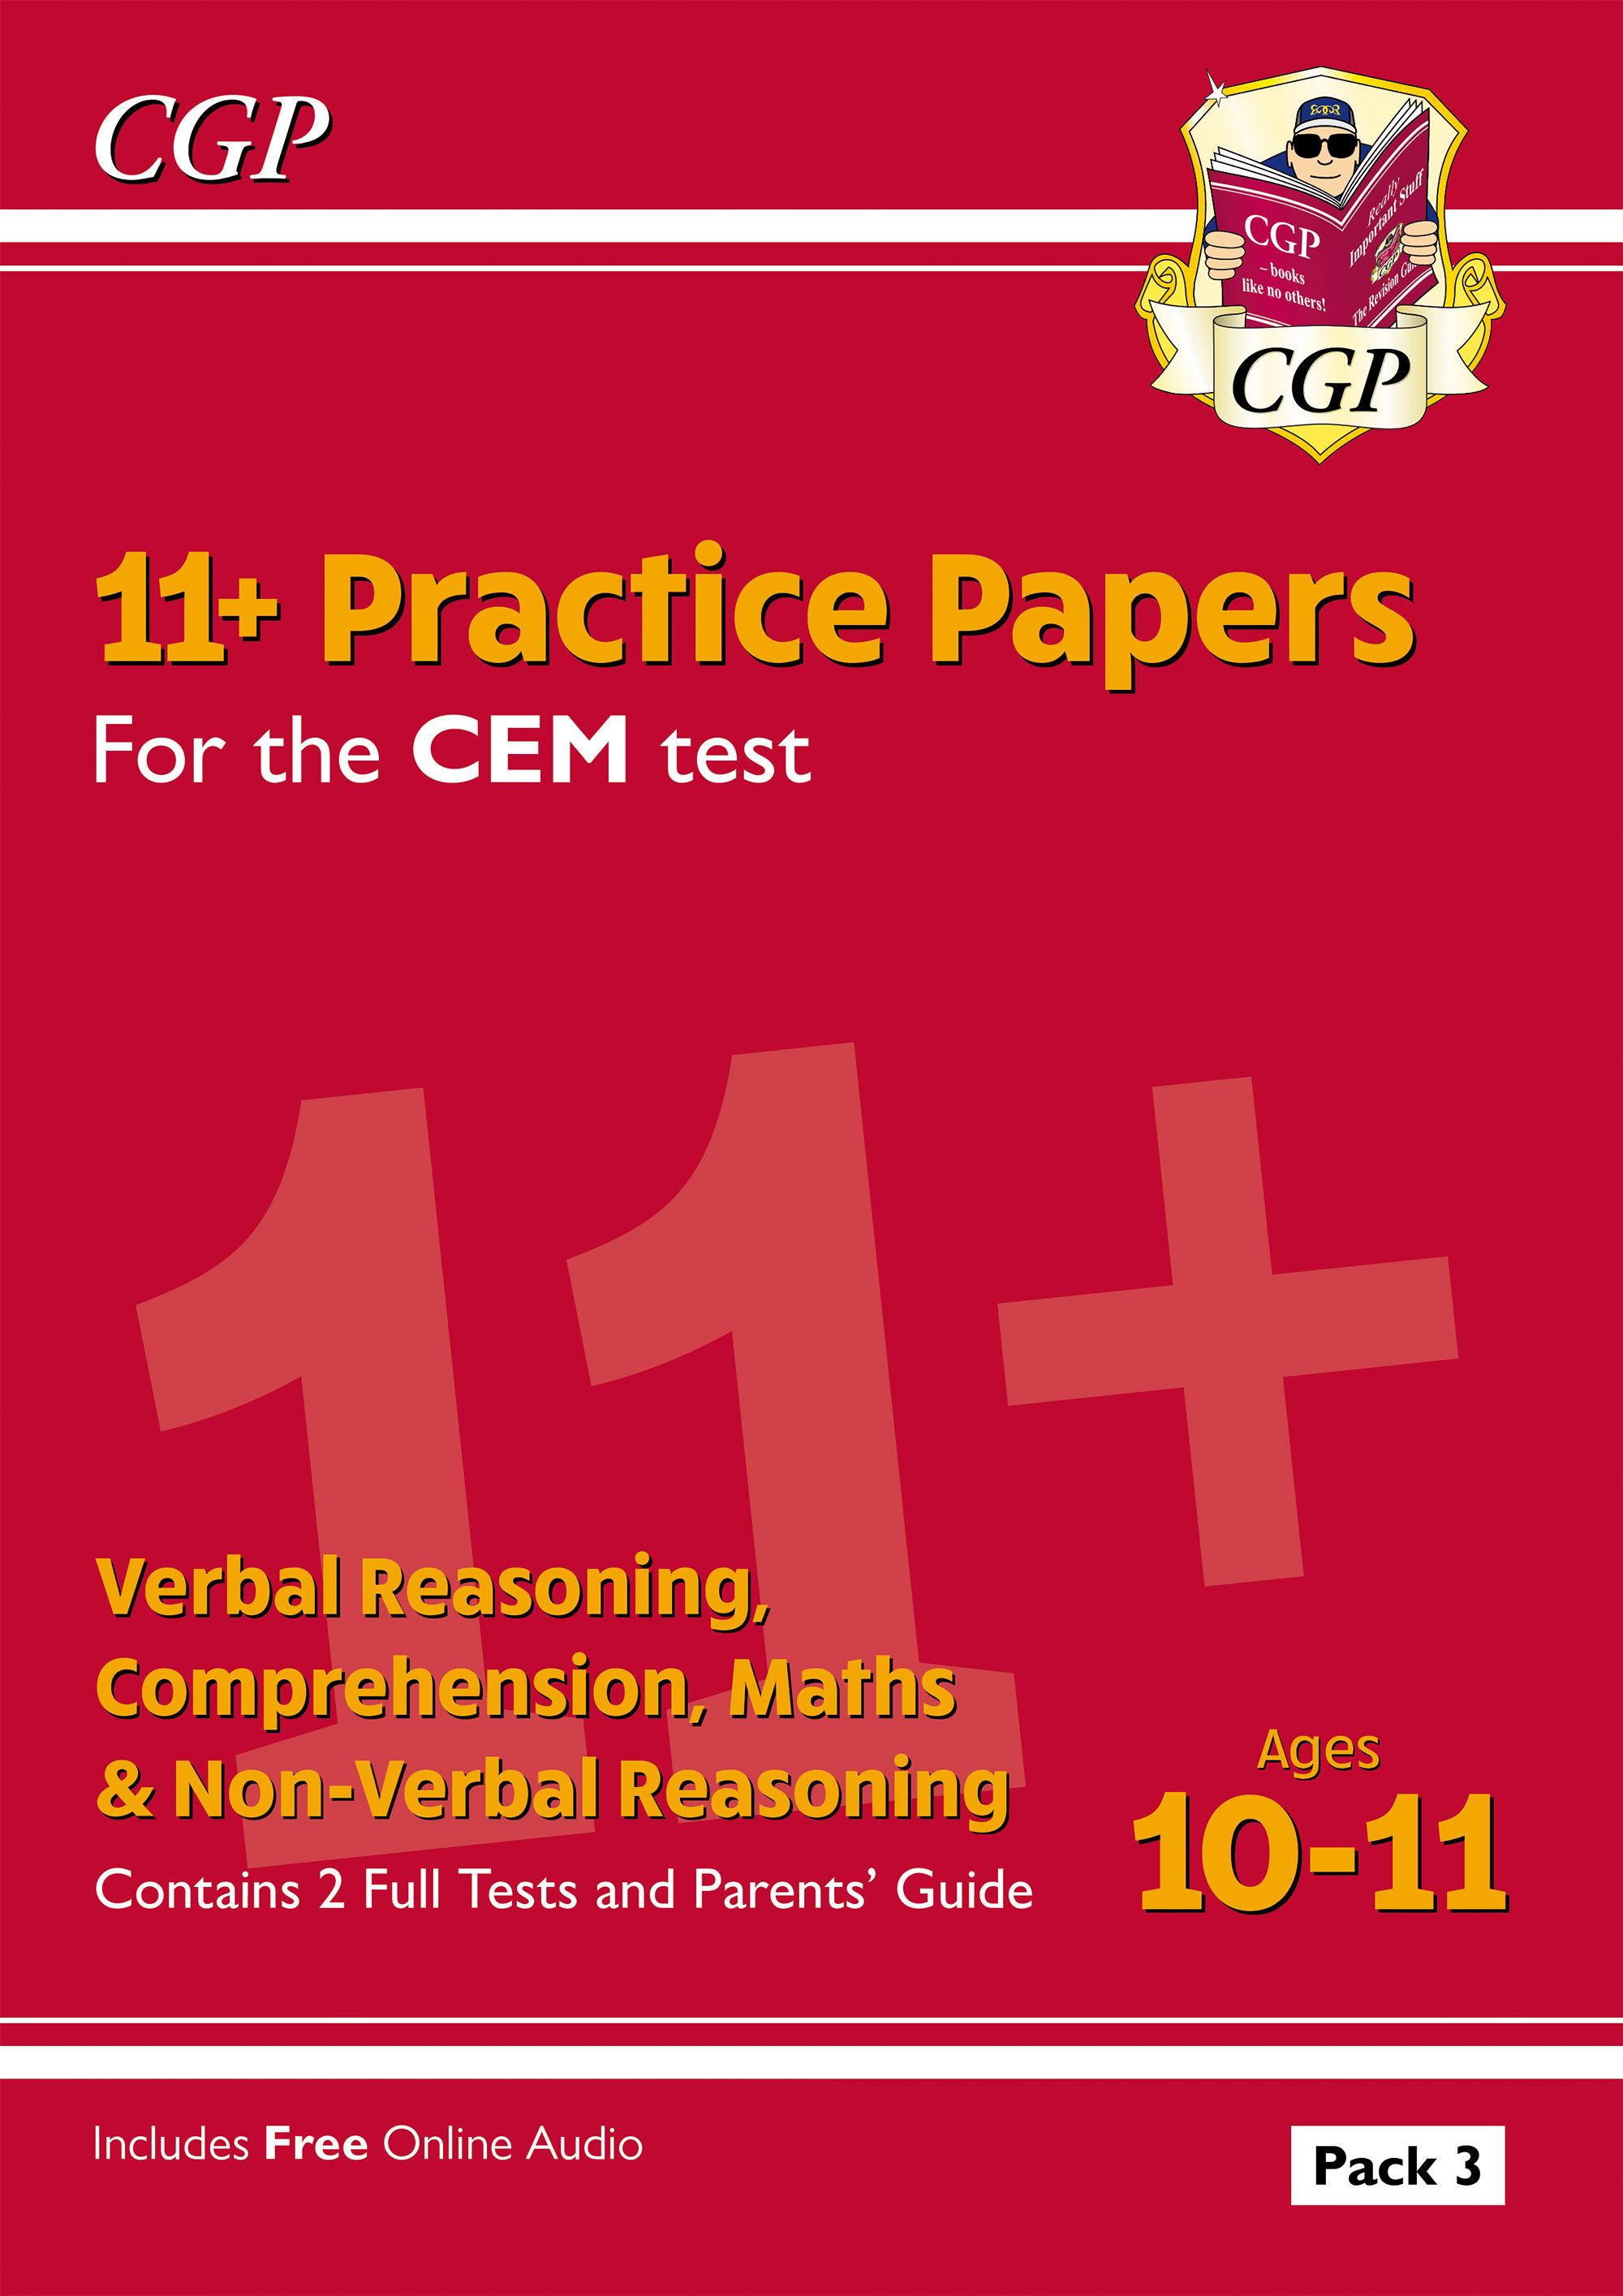 ELP3DE2DK - New 11+ CEM Practice Papers: Ages 10-11 - Pack 3 (with Parents' Guide)